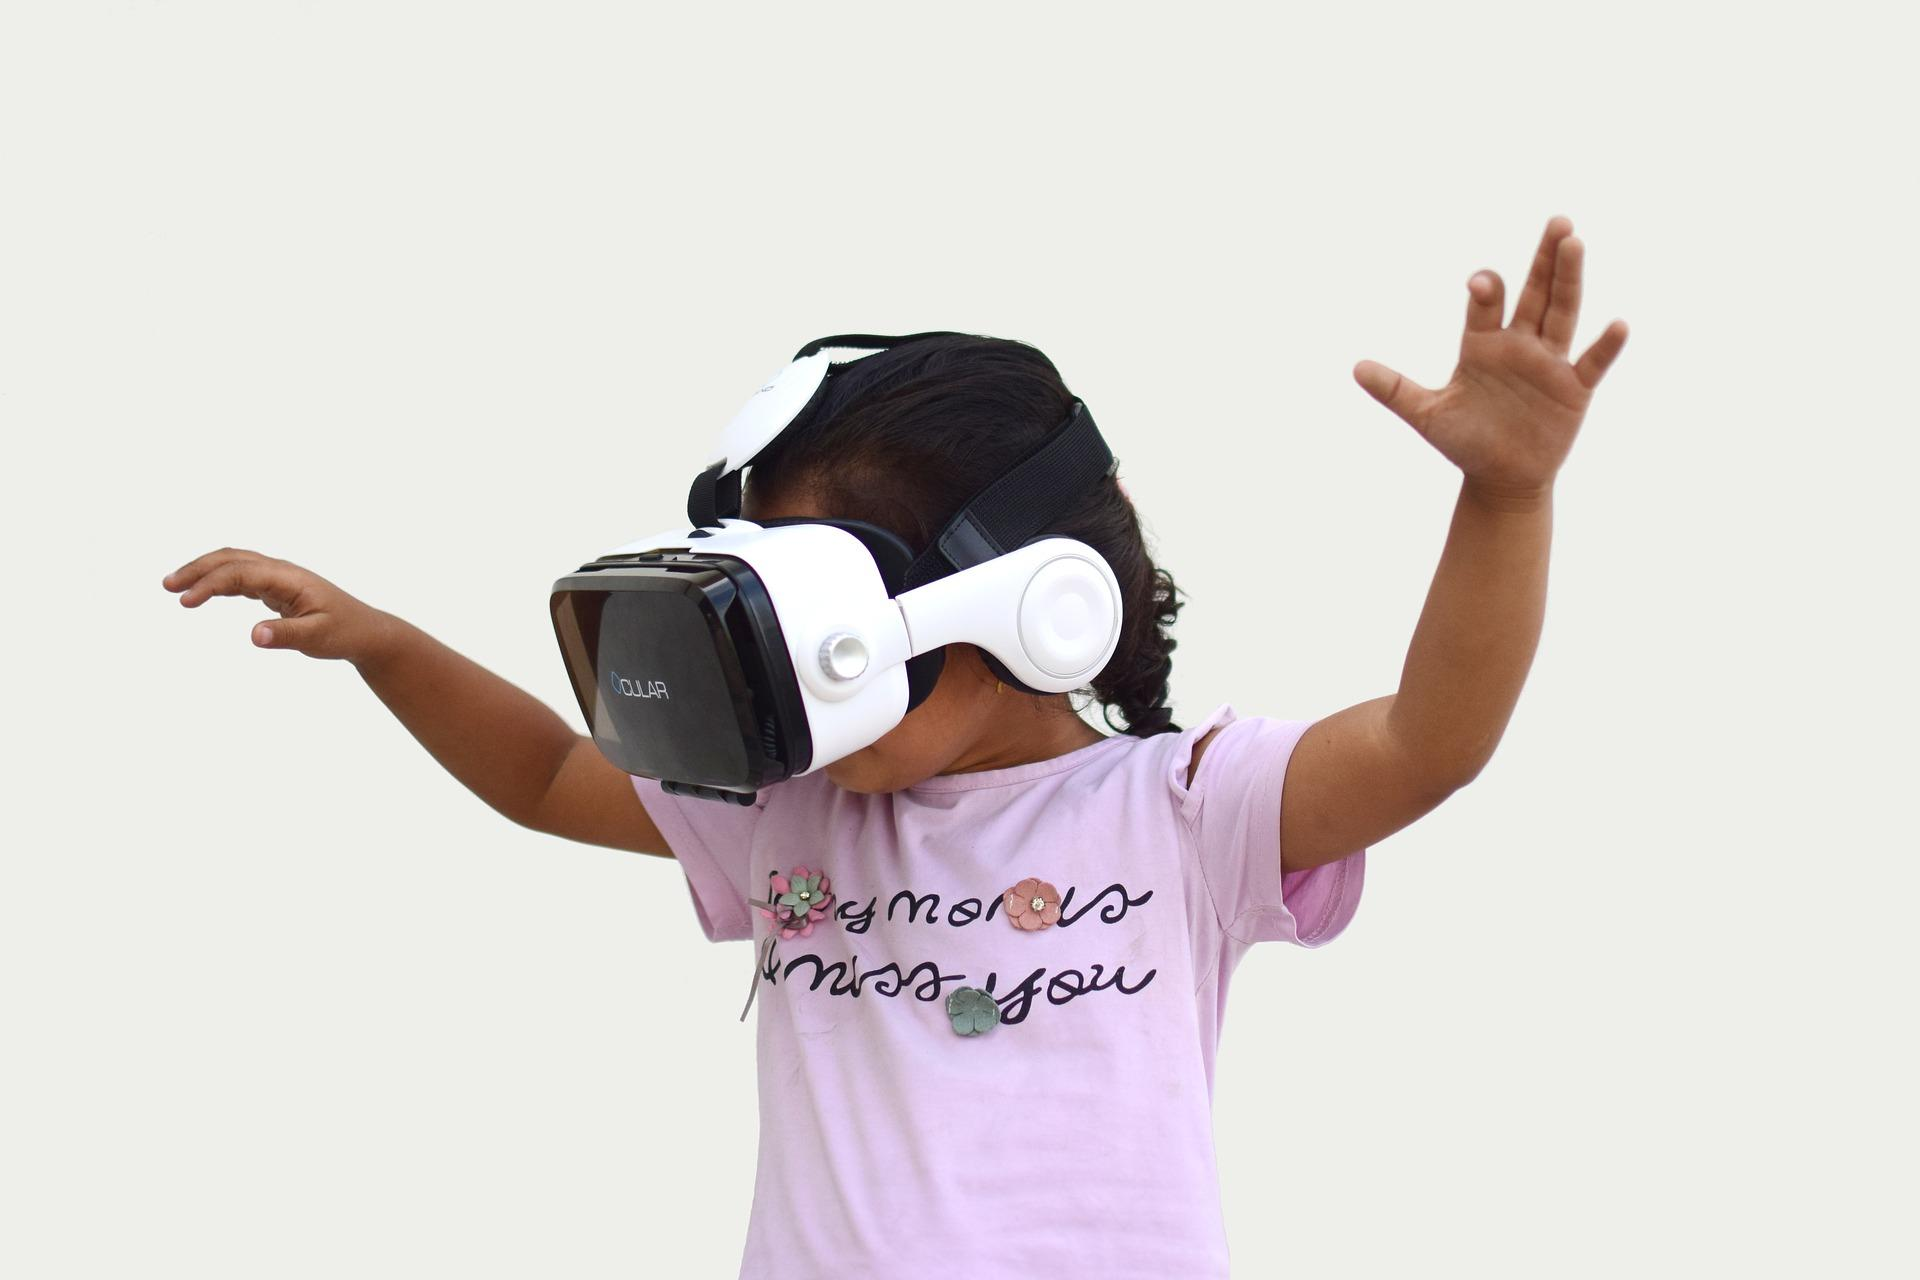 Intervention of social speech comprehension in virtual reality environment